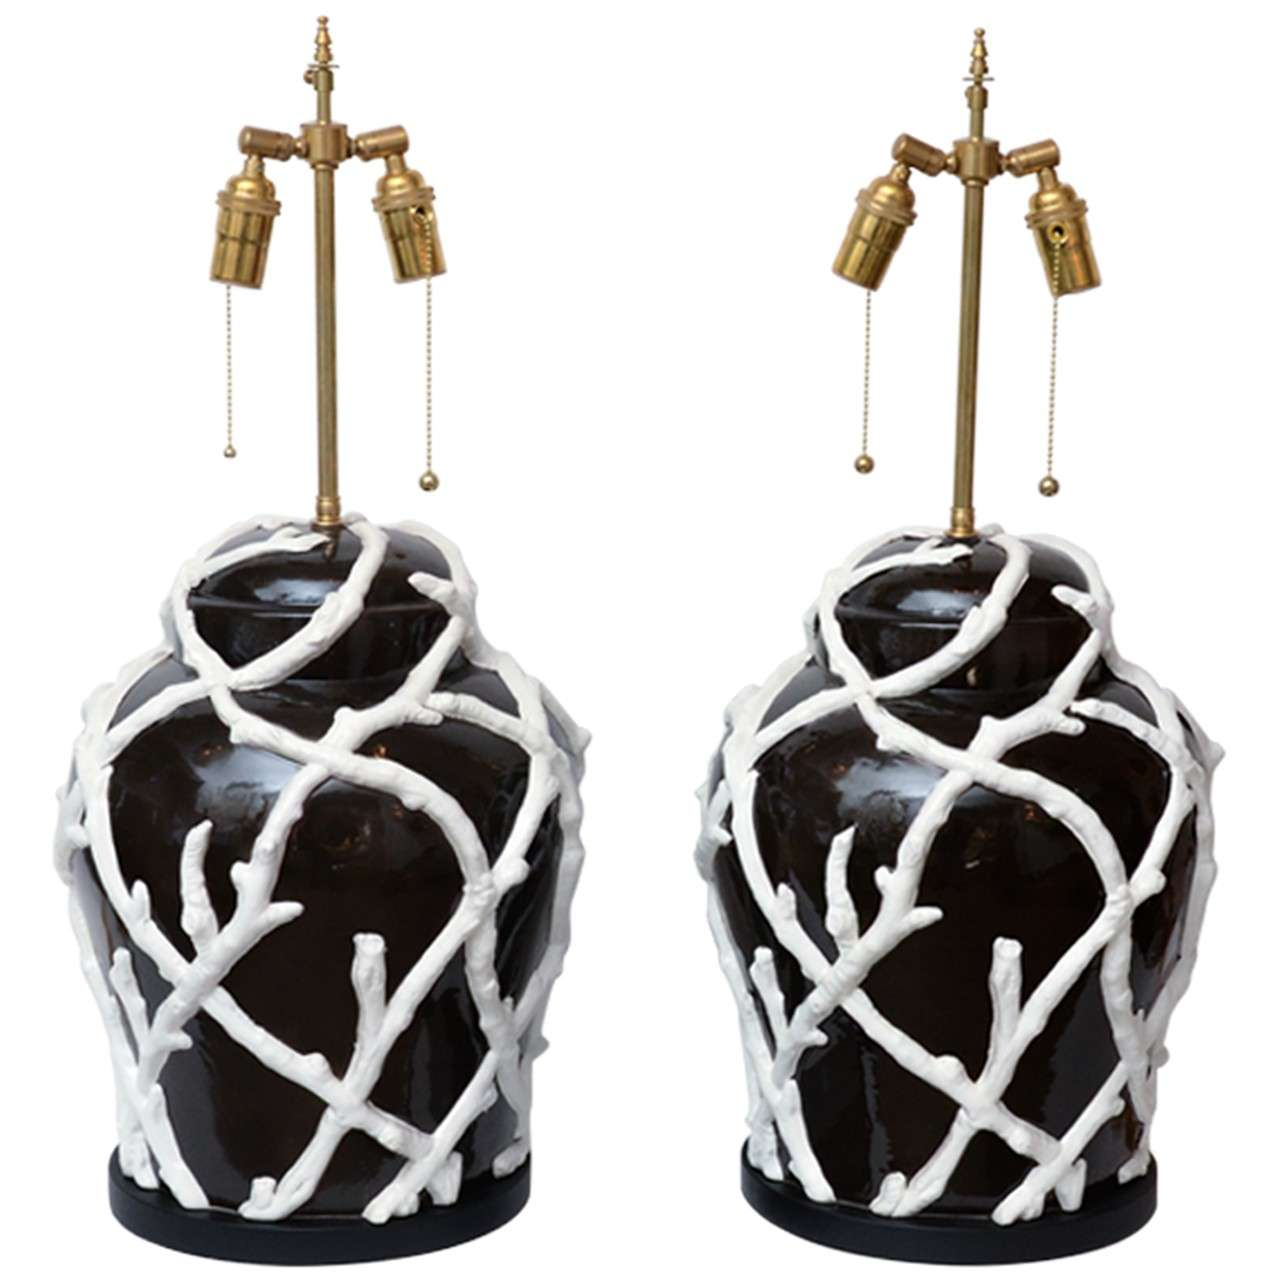 Pair of Brown Ceramic Ginger Jar Form Lamps with White Applied Vine Design